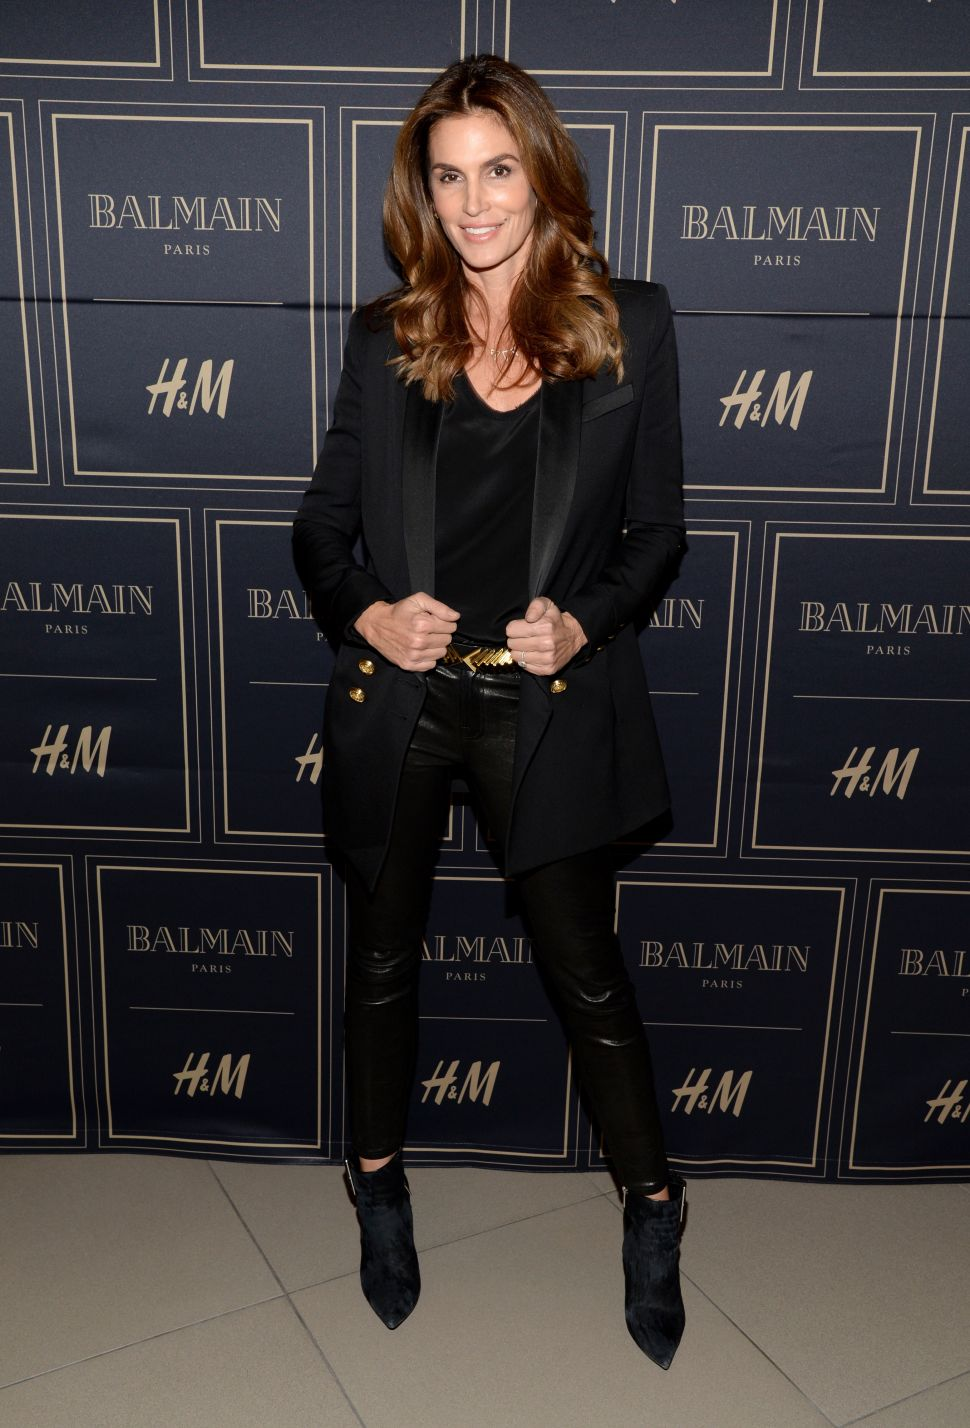 Fashion Roundup: Cindy Crawford to Retire, Riccardo Tisci Collaborates With Nike